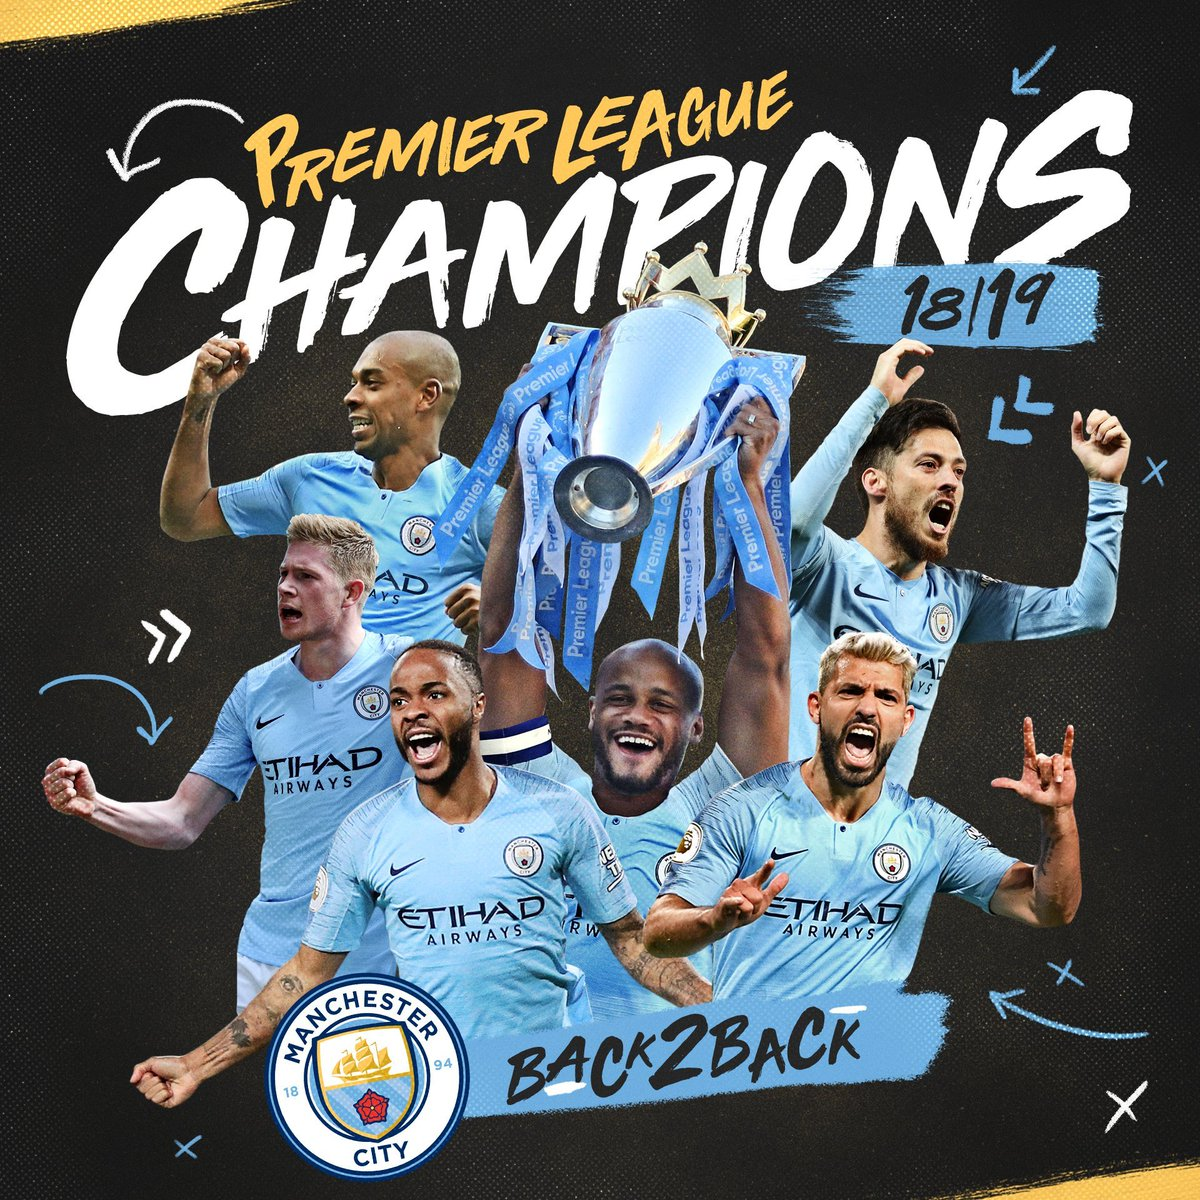 MANCHESTER CITY BACK TO BACK PREMIER LEAGUE CHAMPIONS 🎉  TWO TIMES IN A ROW 🏆 2017/2018 🏆 2018/2019